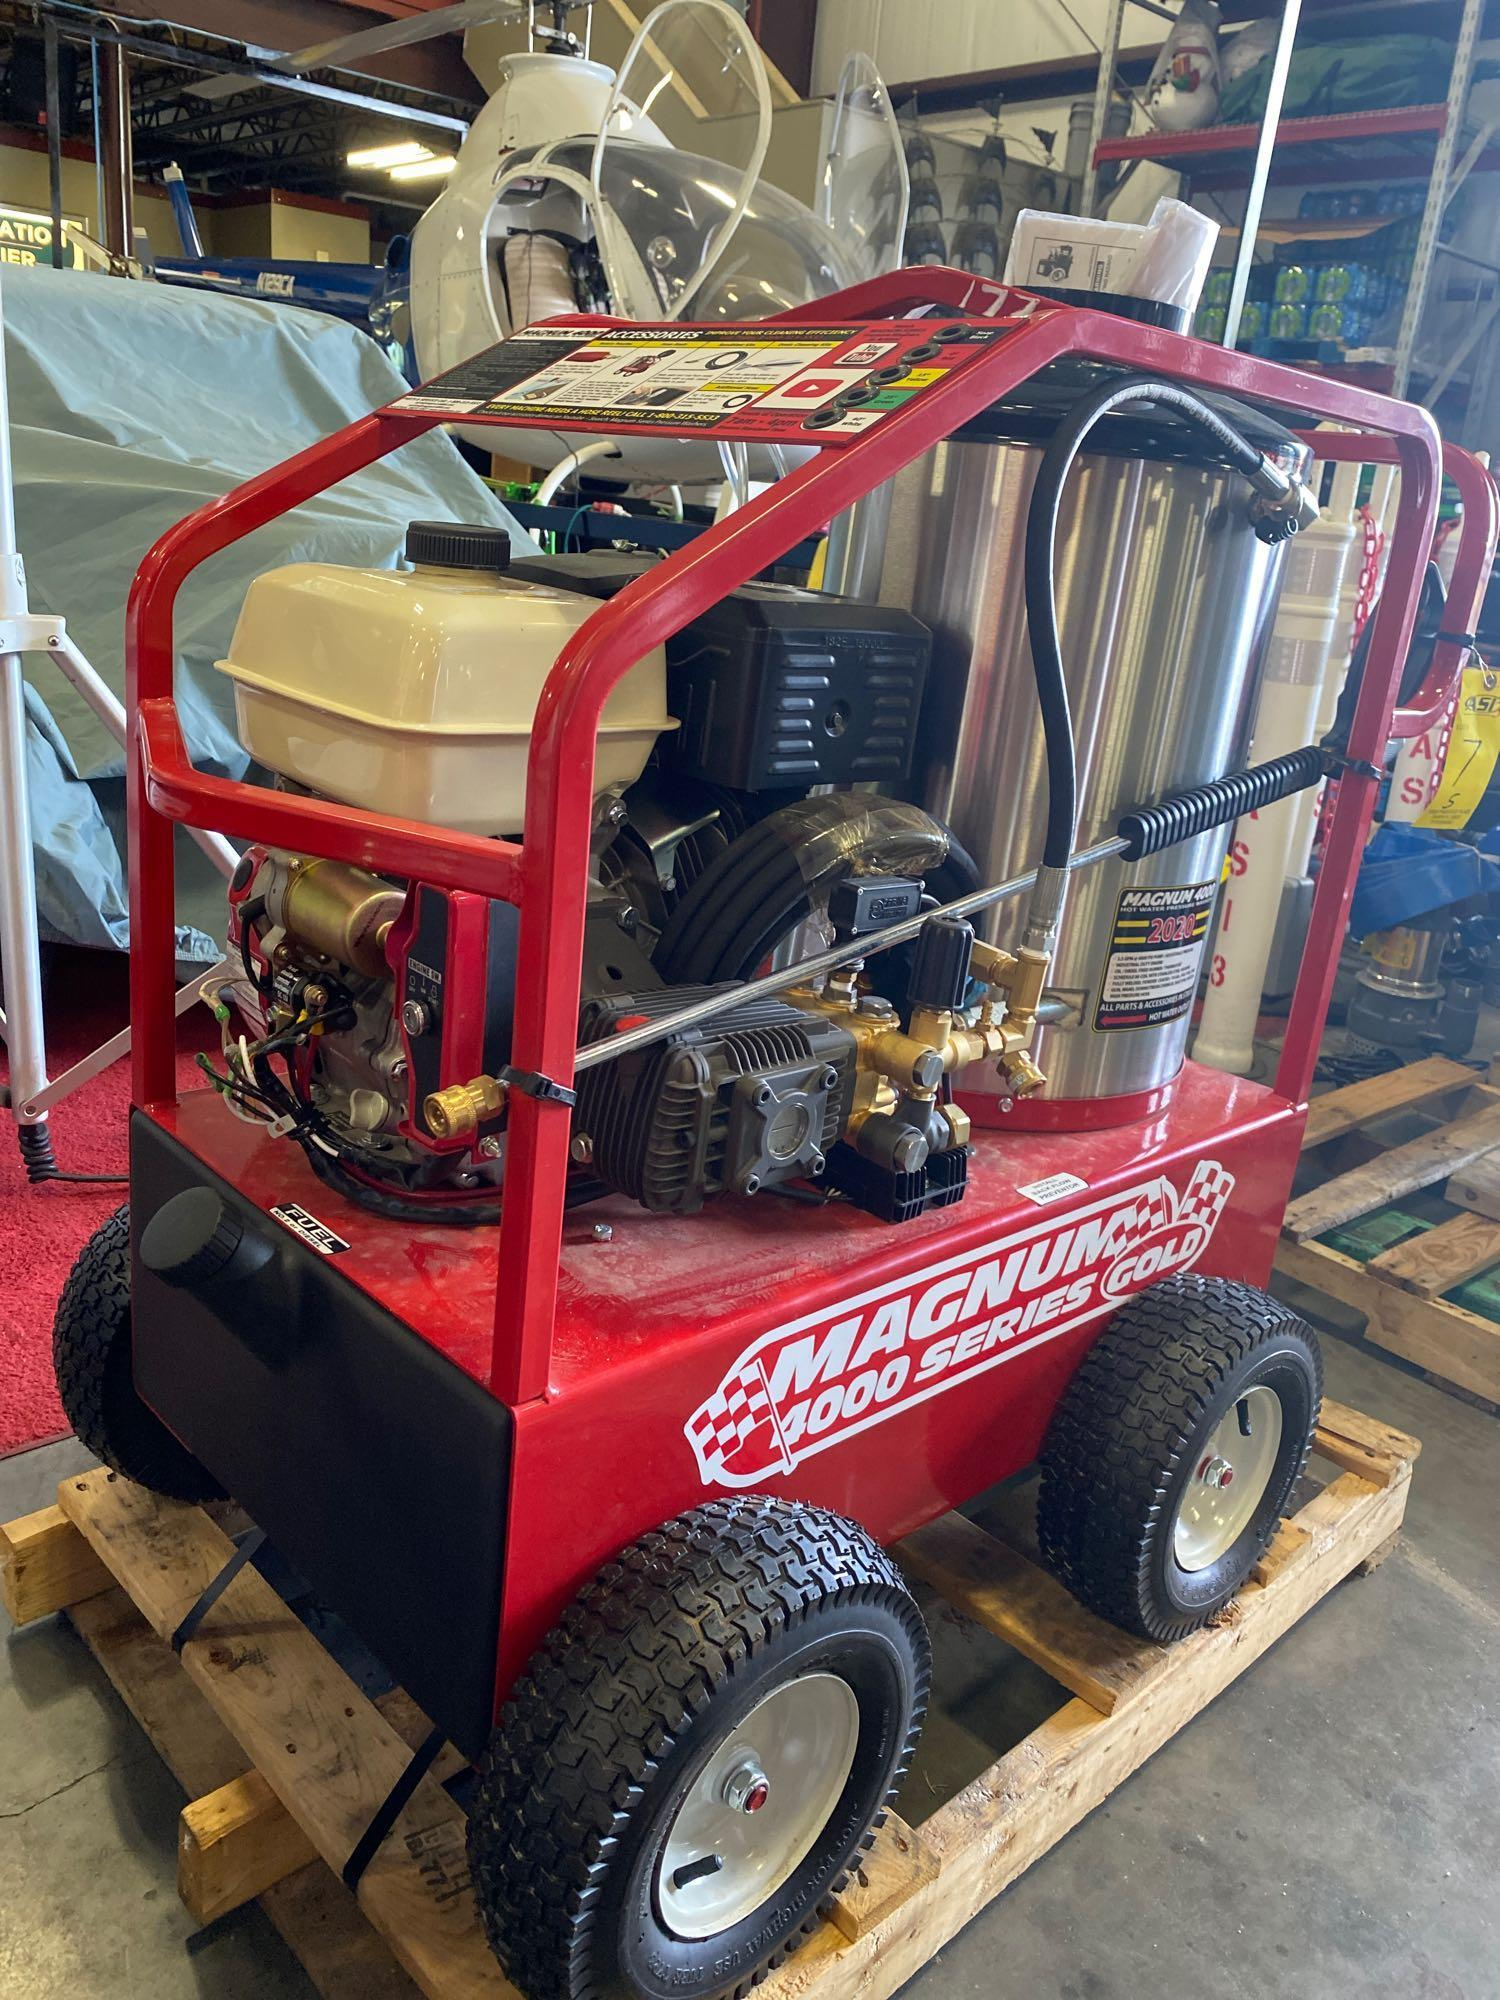 NEW/UNUSED 2020 MAGNUM 4000 HEATED PRESSURE WASHER, ELECTRIC START - Image 3 of 5